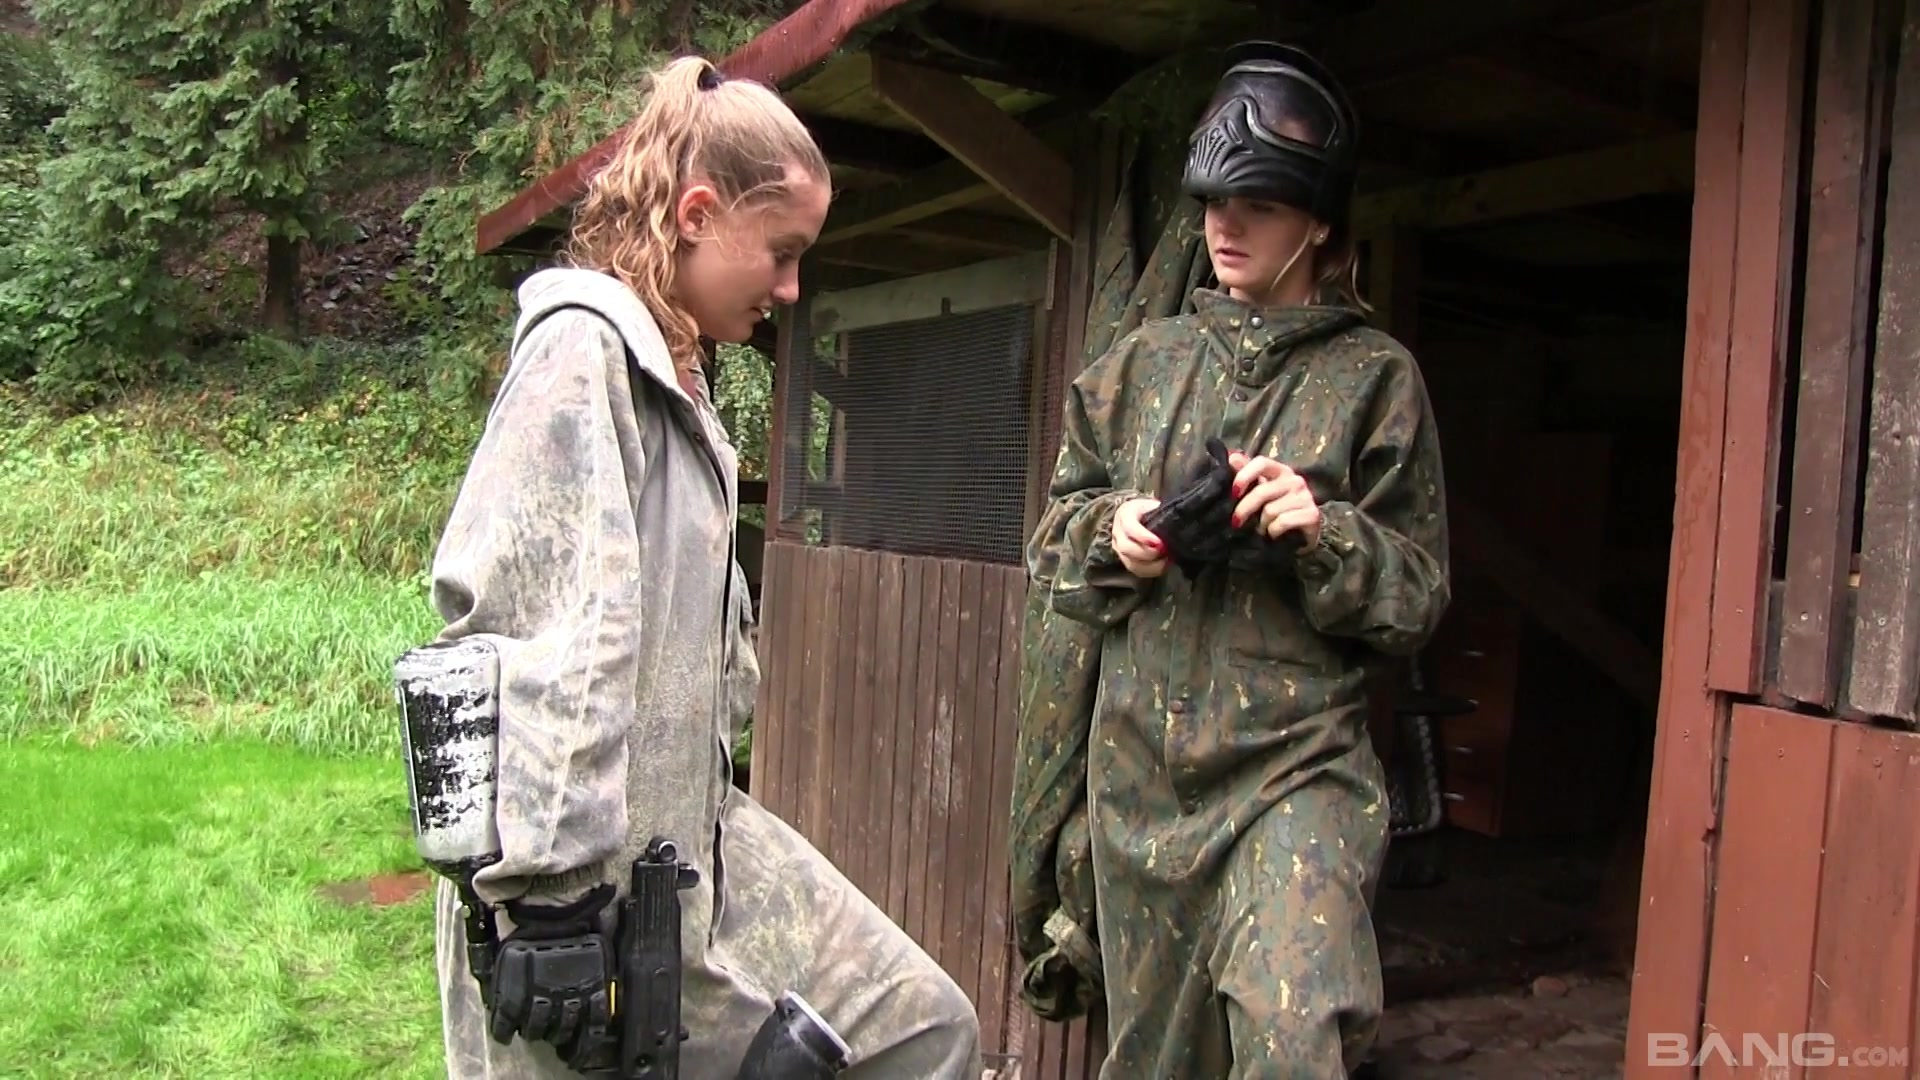 lesbian-military-trailer-parent-directory-index-downloaded-sex-video